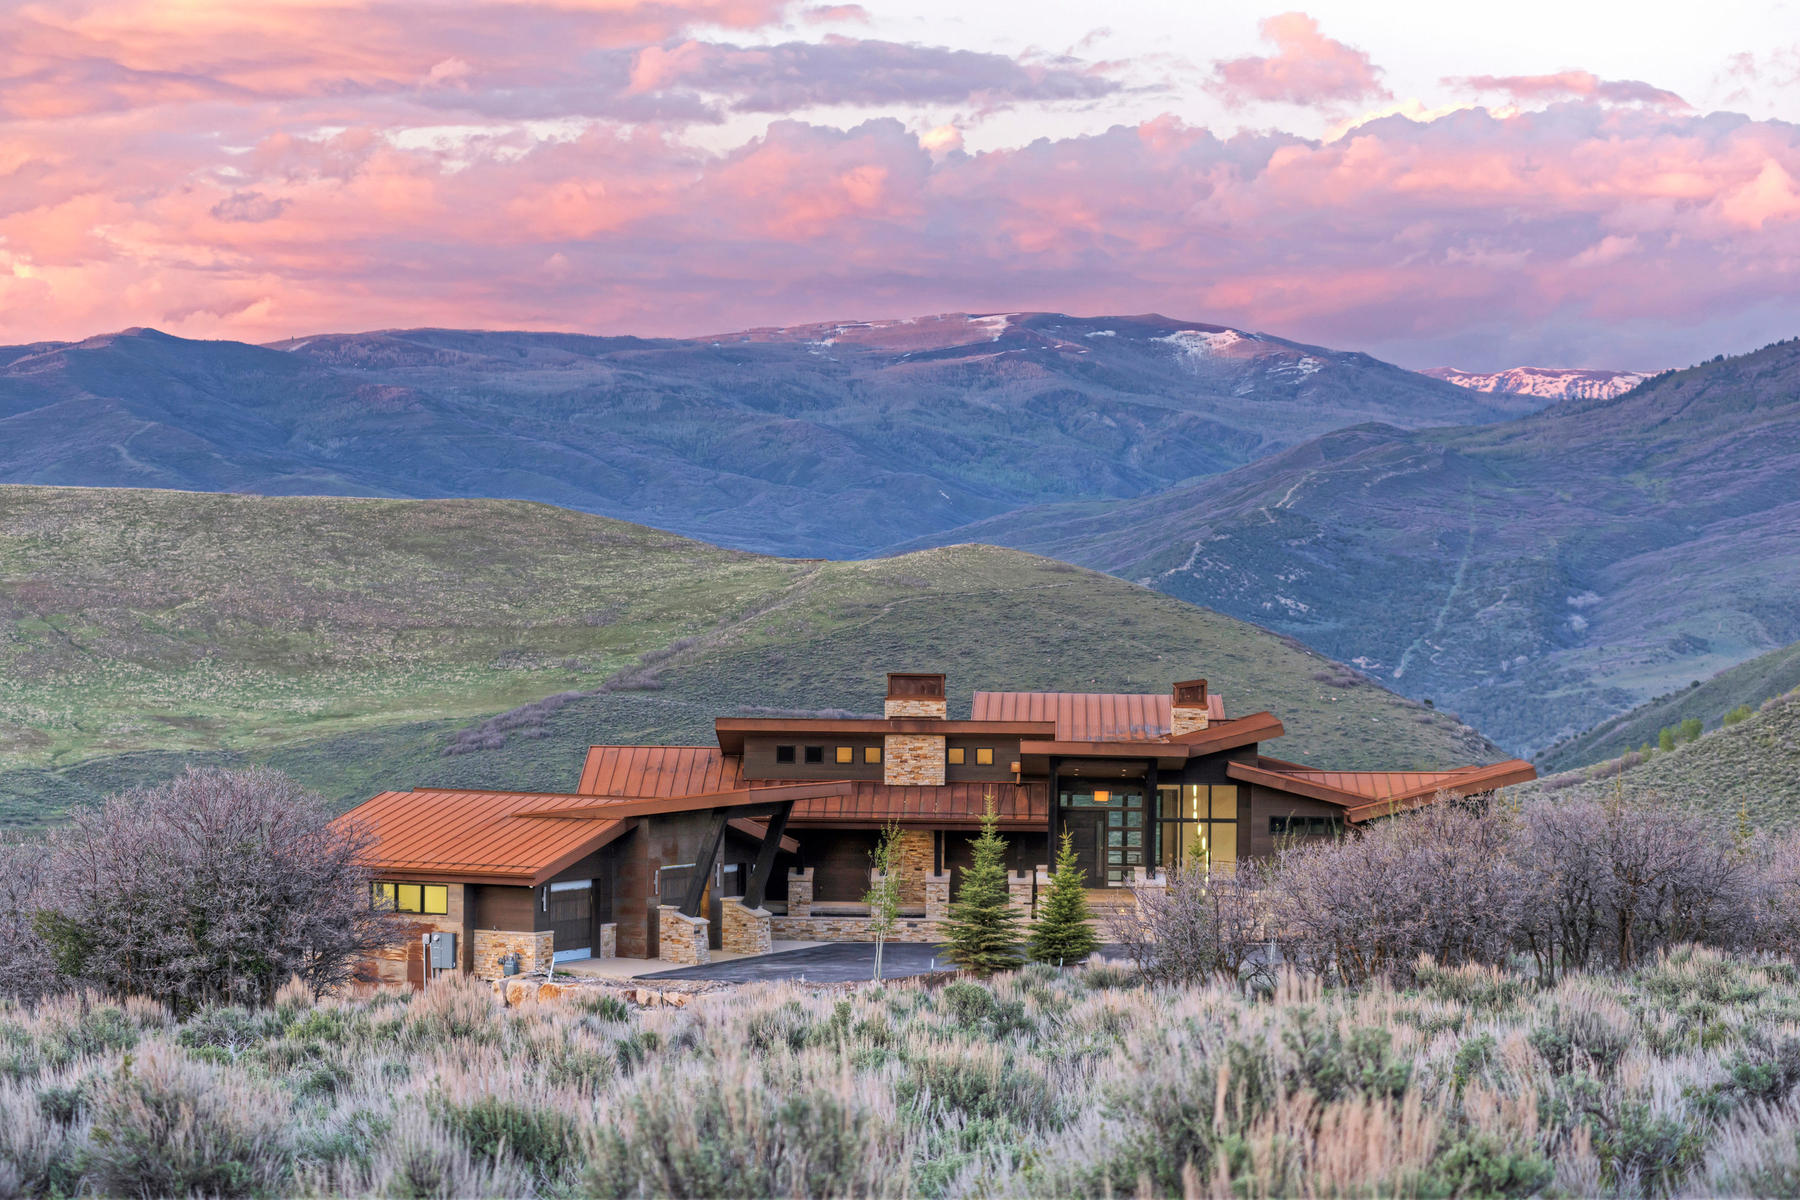 Single Family Home for Sale at Spectacular New Construction Home with Panoramic Views protected by Open Space! 3931 Aspen Camp Loop Park City, Utah, 84098 United States